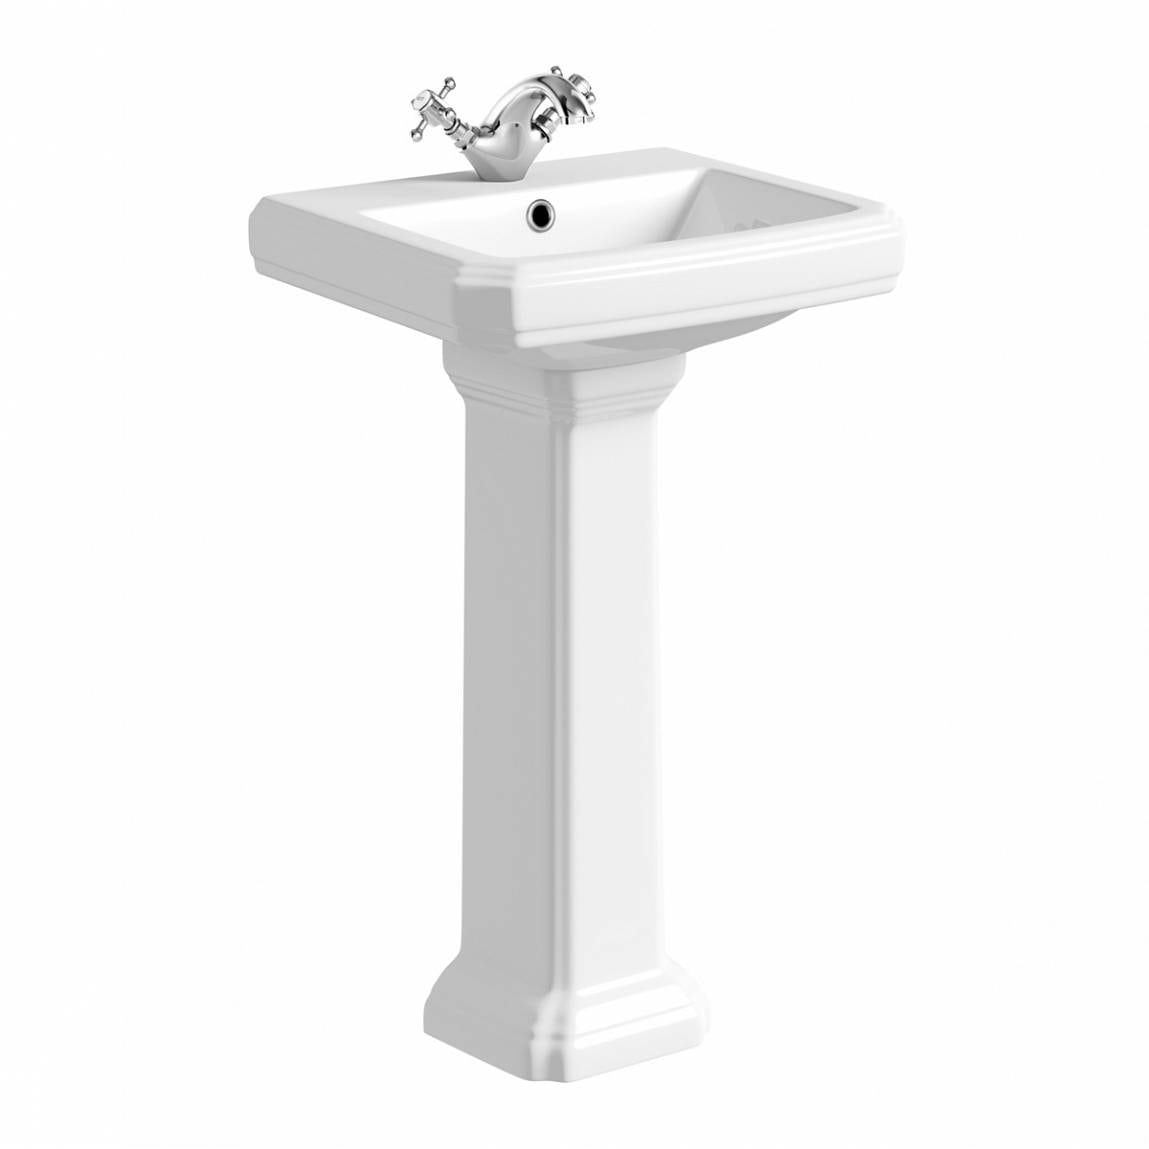 The Bath Co. Dulwich 1 tap hole full pedestal basin 500mm with waste